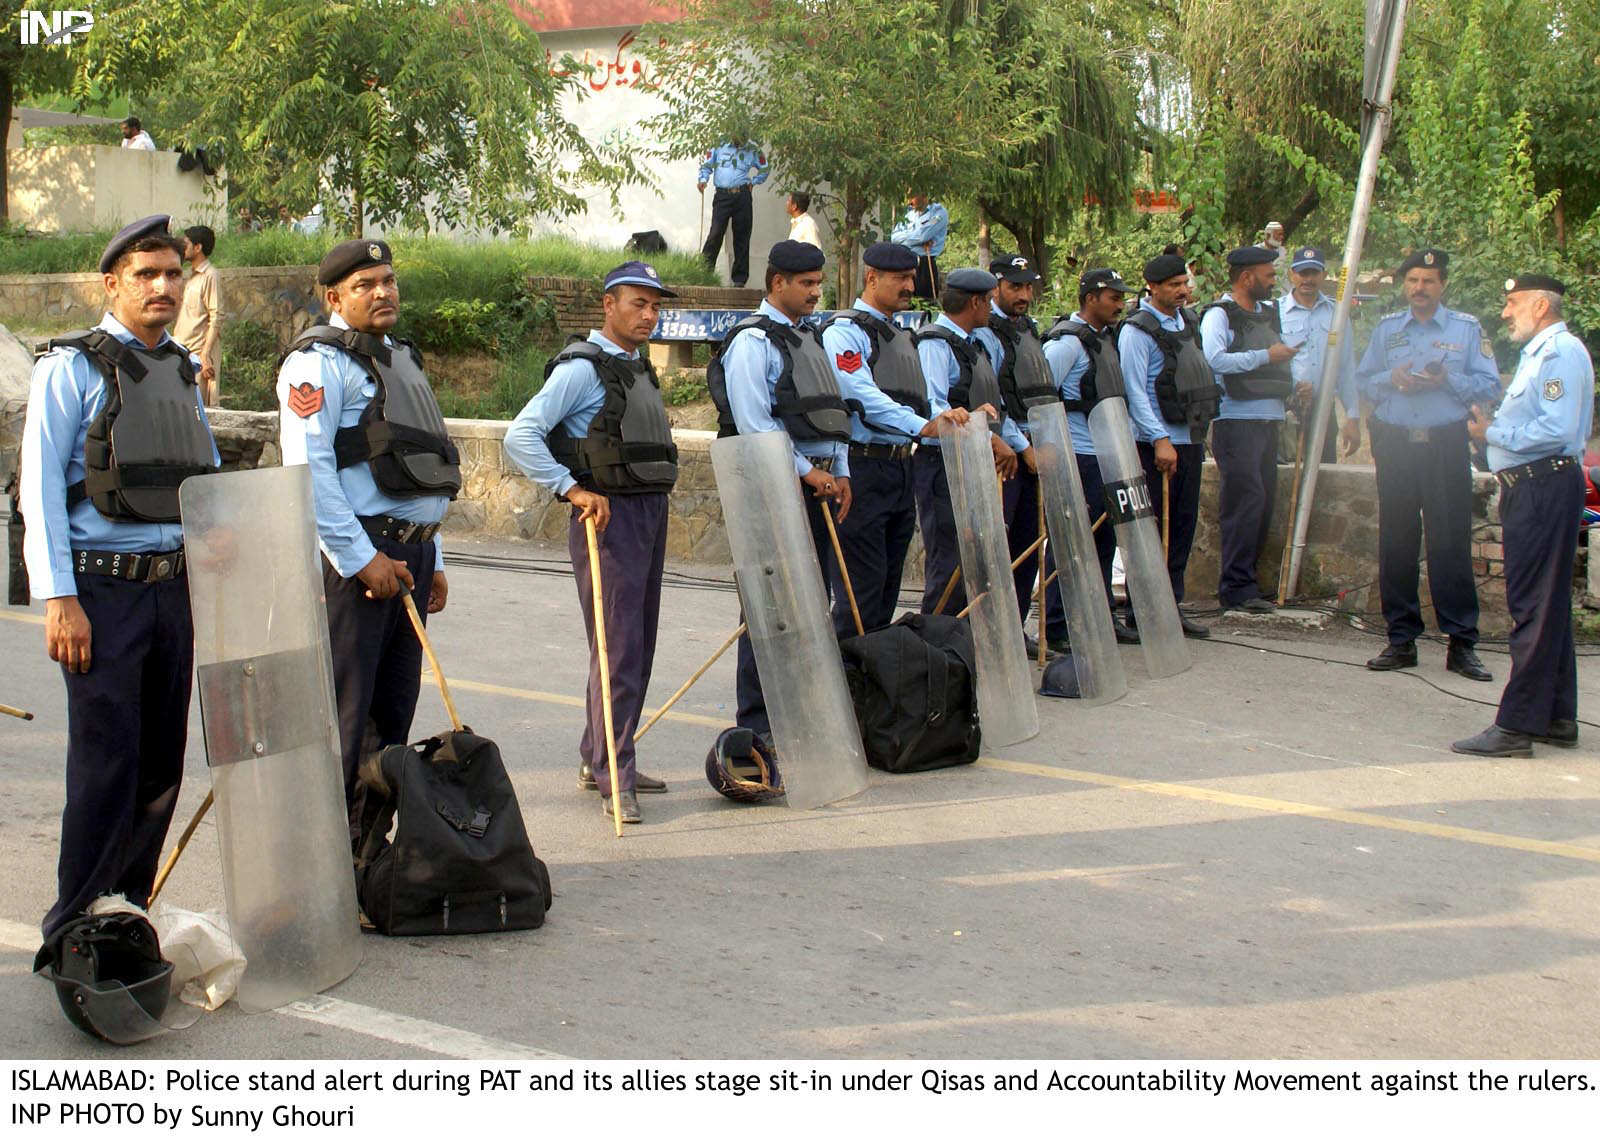 Community Police Centre (CPC) has been established with an officer of rank of Sub-Inspector as in-charge. PHOTO: INP